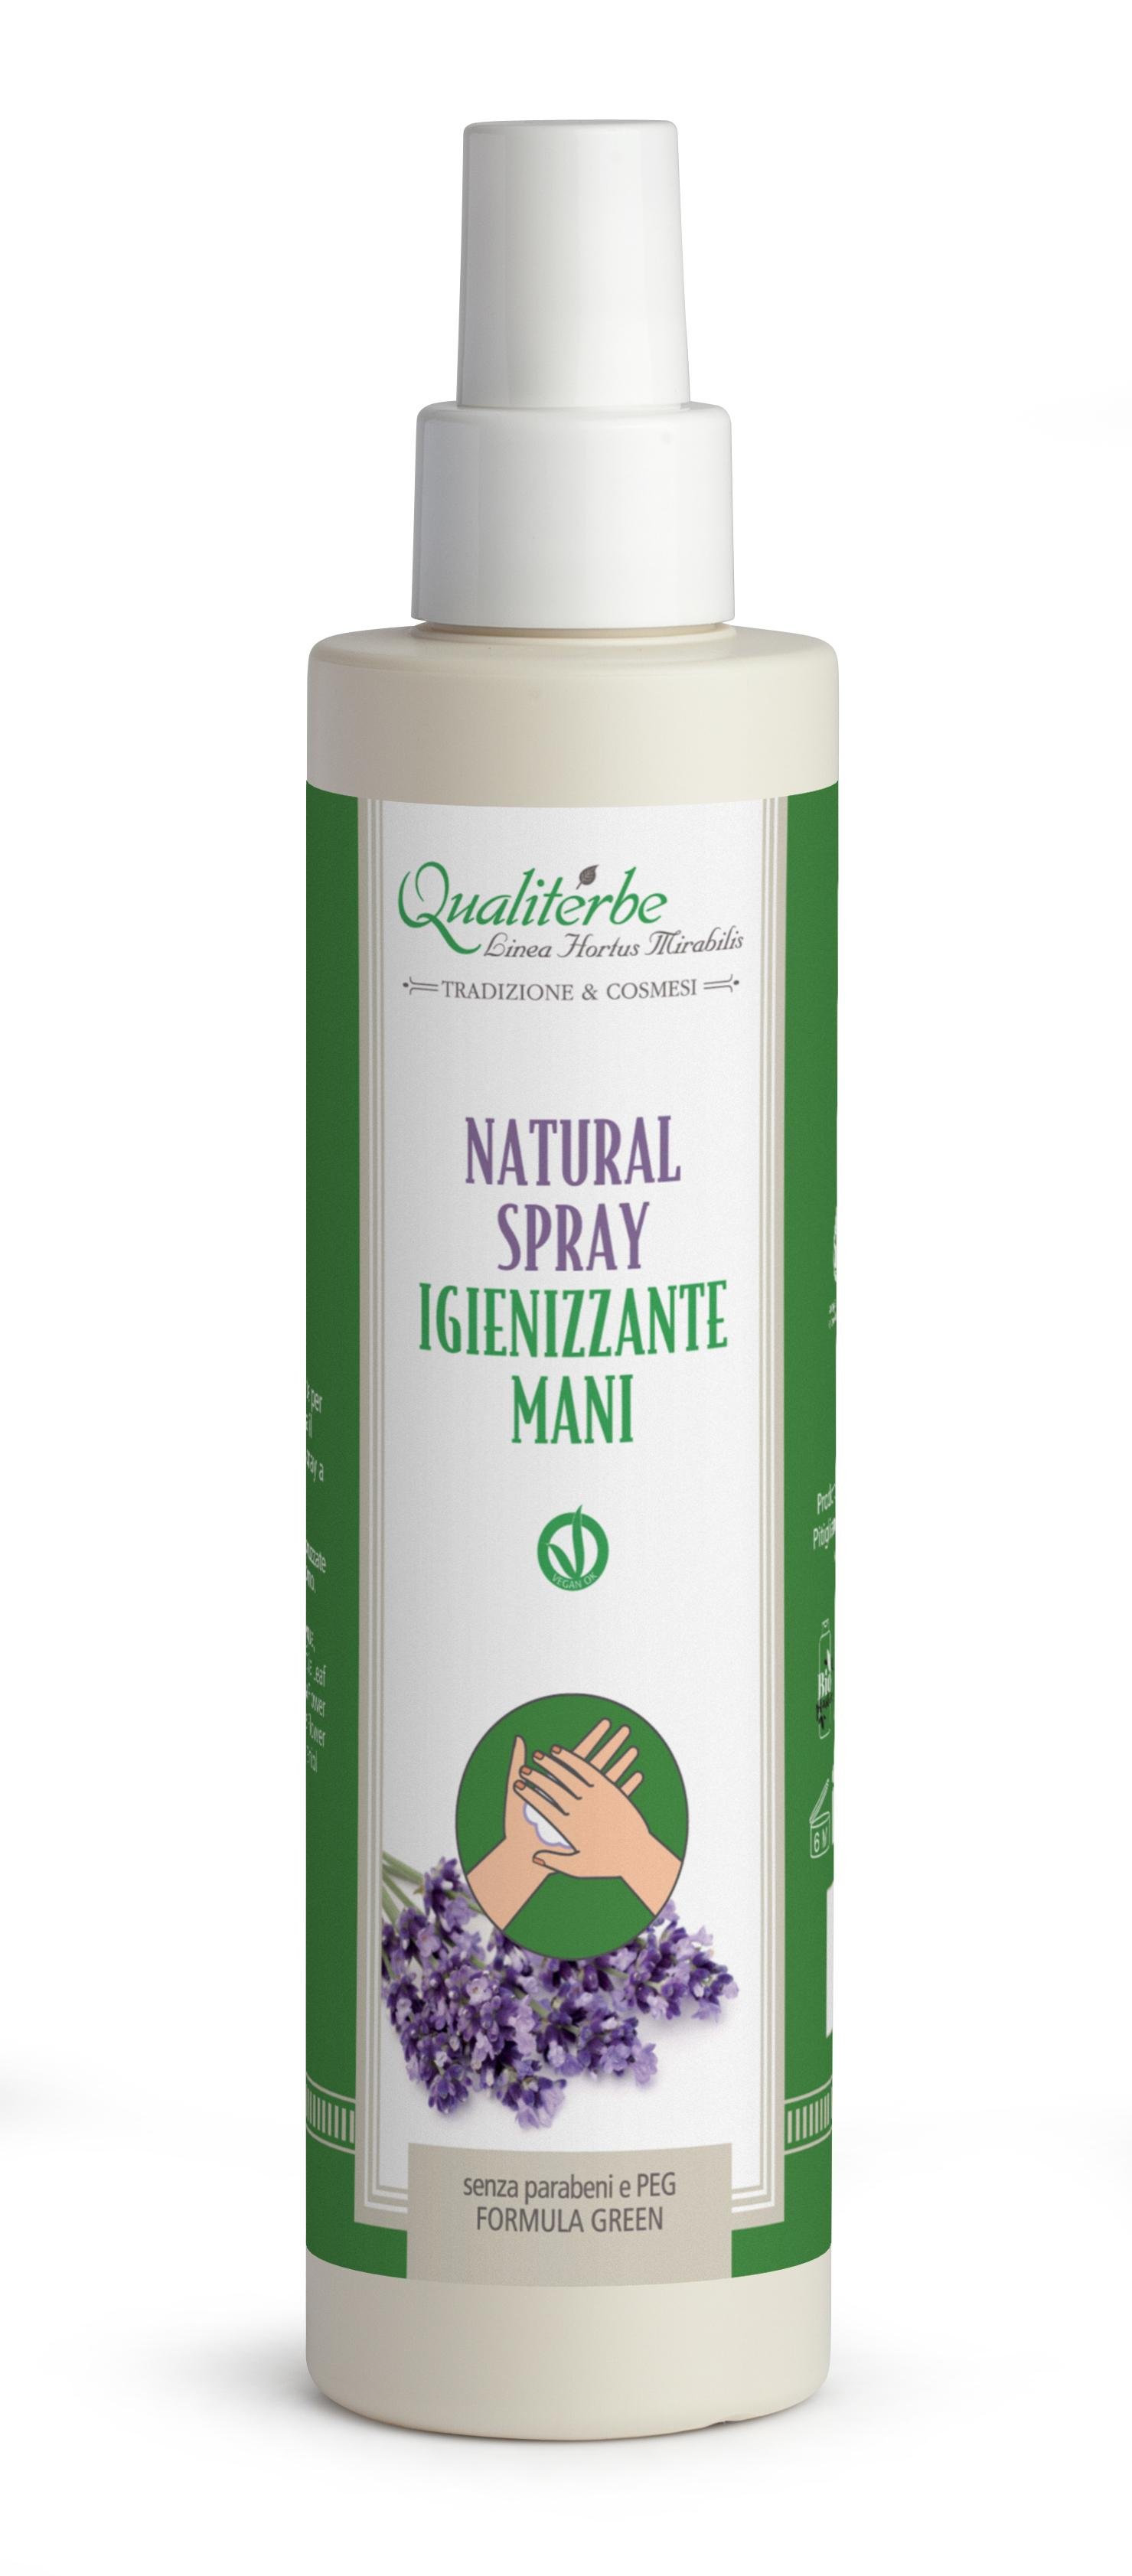 Natural Spray Igienizzante Mani 200ml 100% Naturale